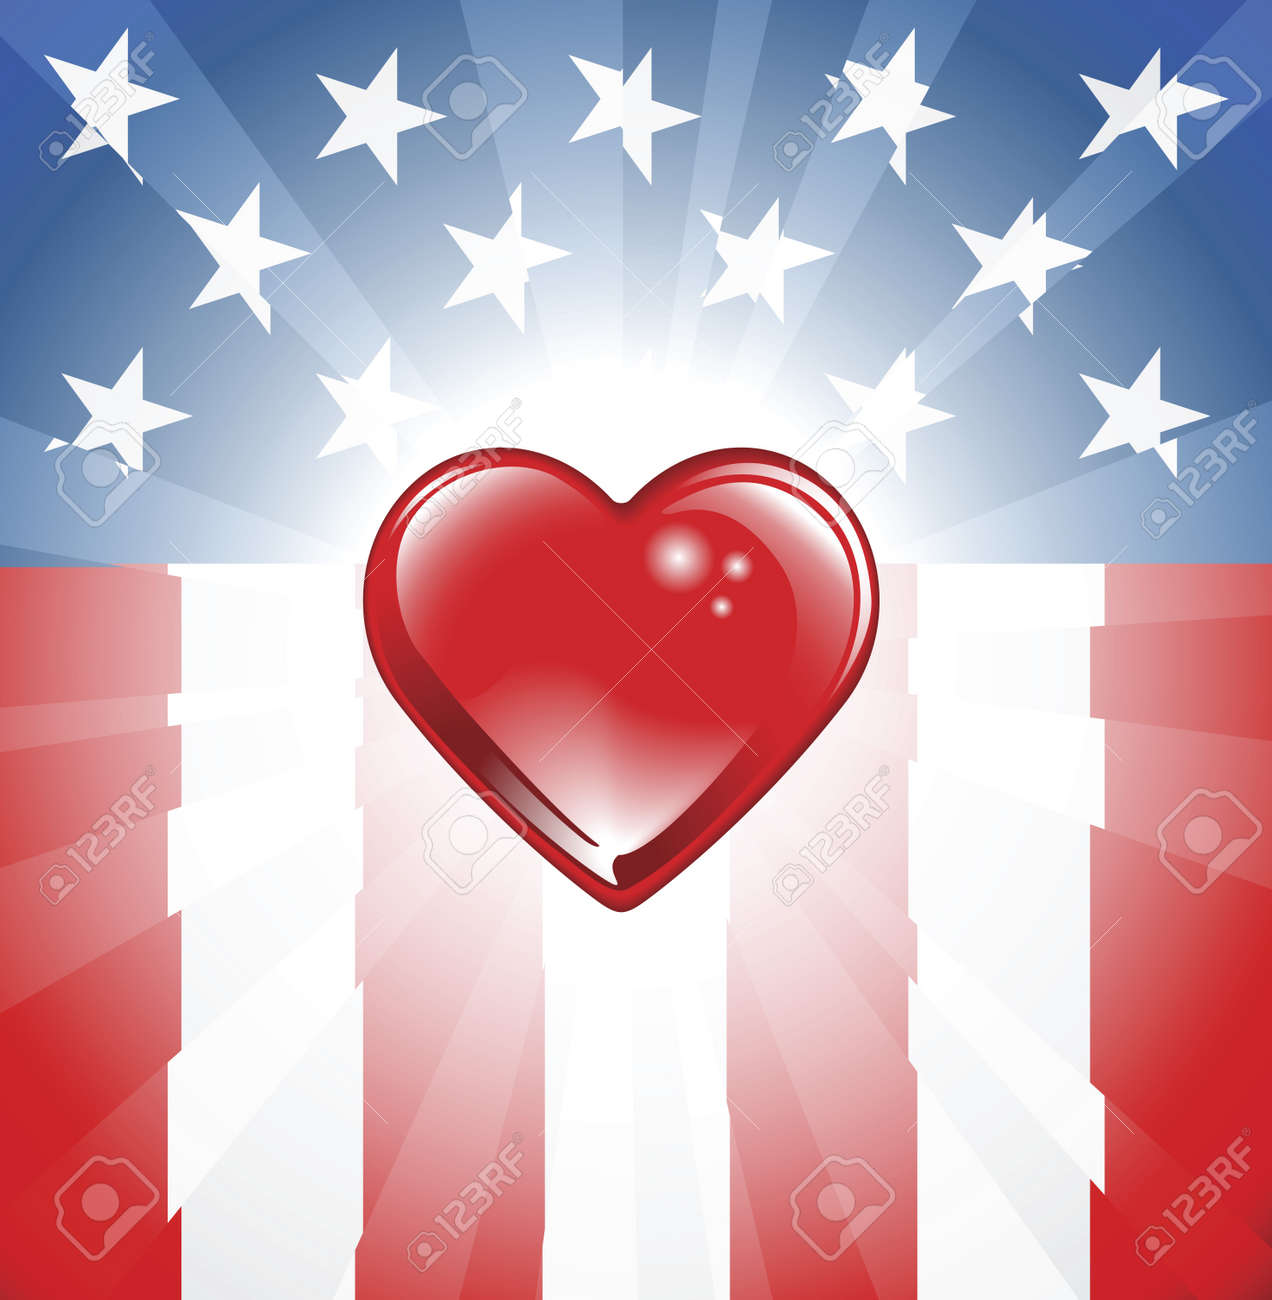 A background featuring Heart shape and stars and stripes background Stock Vector - 9931682